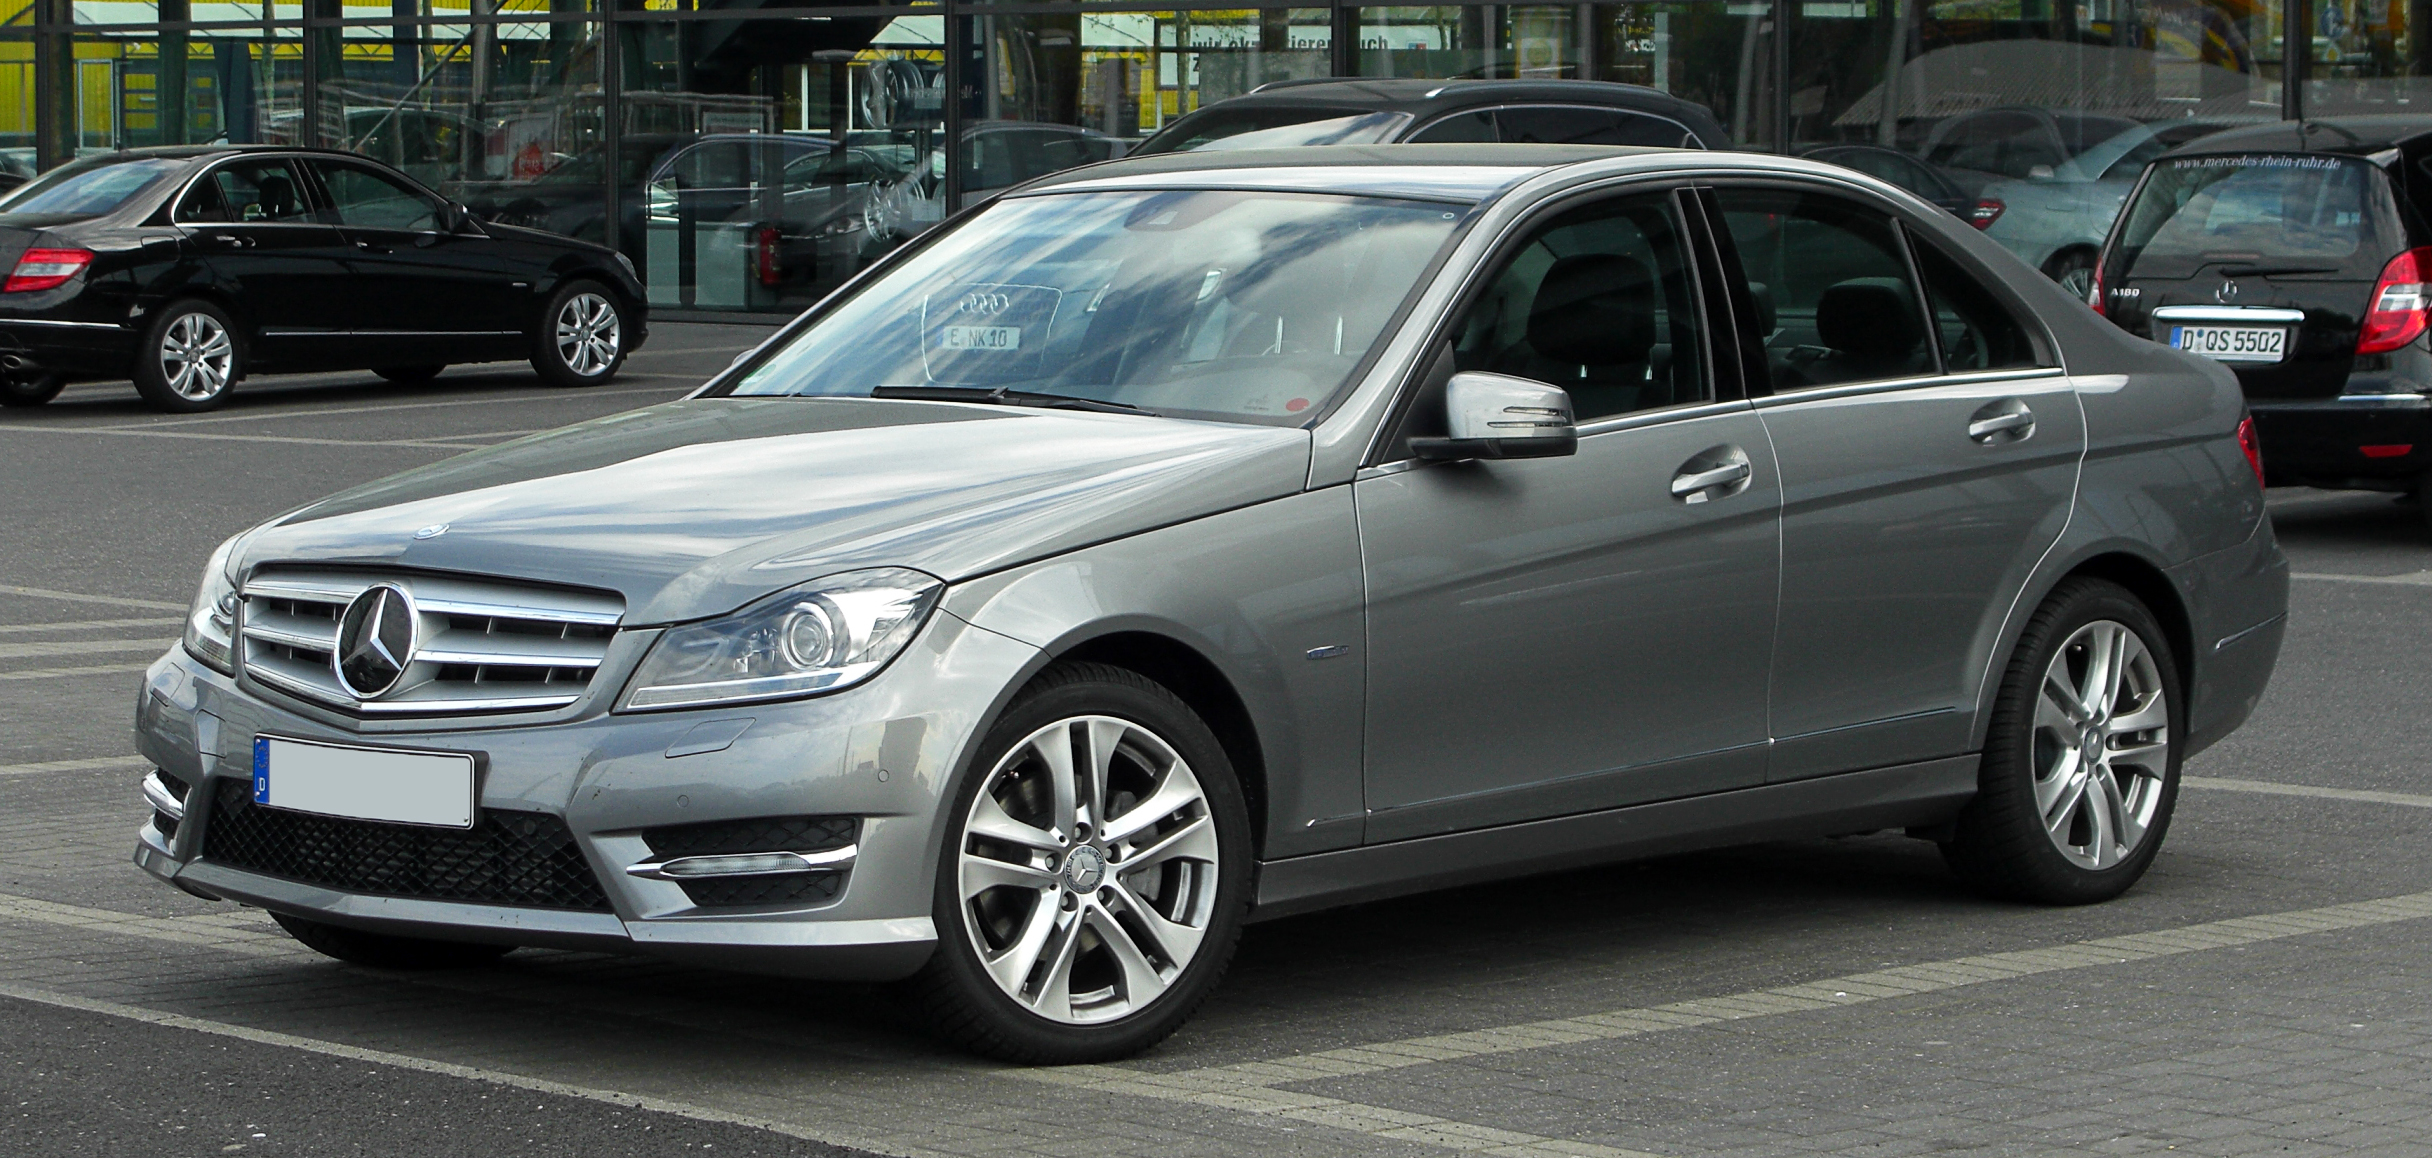 mercedes-benz c 220 cdi blueefficiency-pic. 3